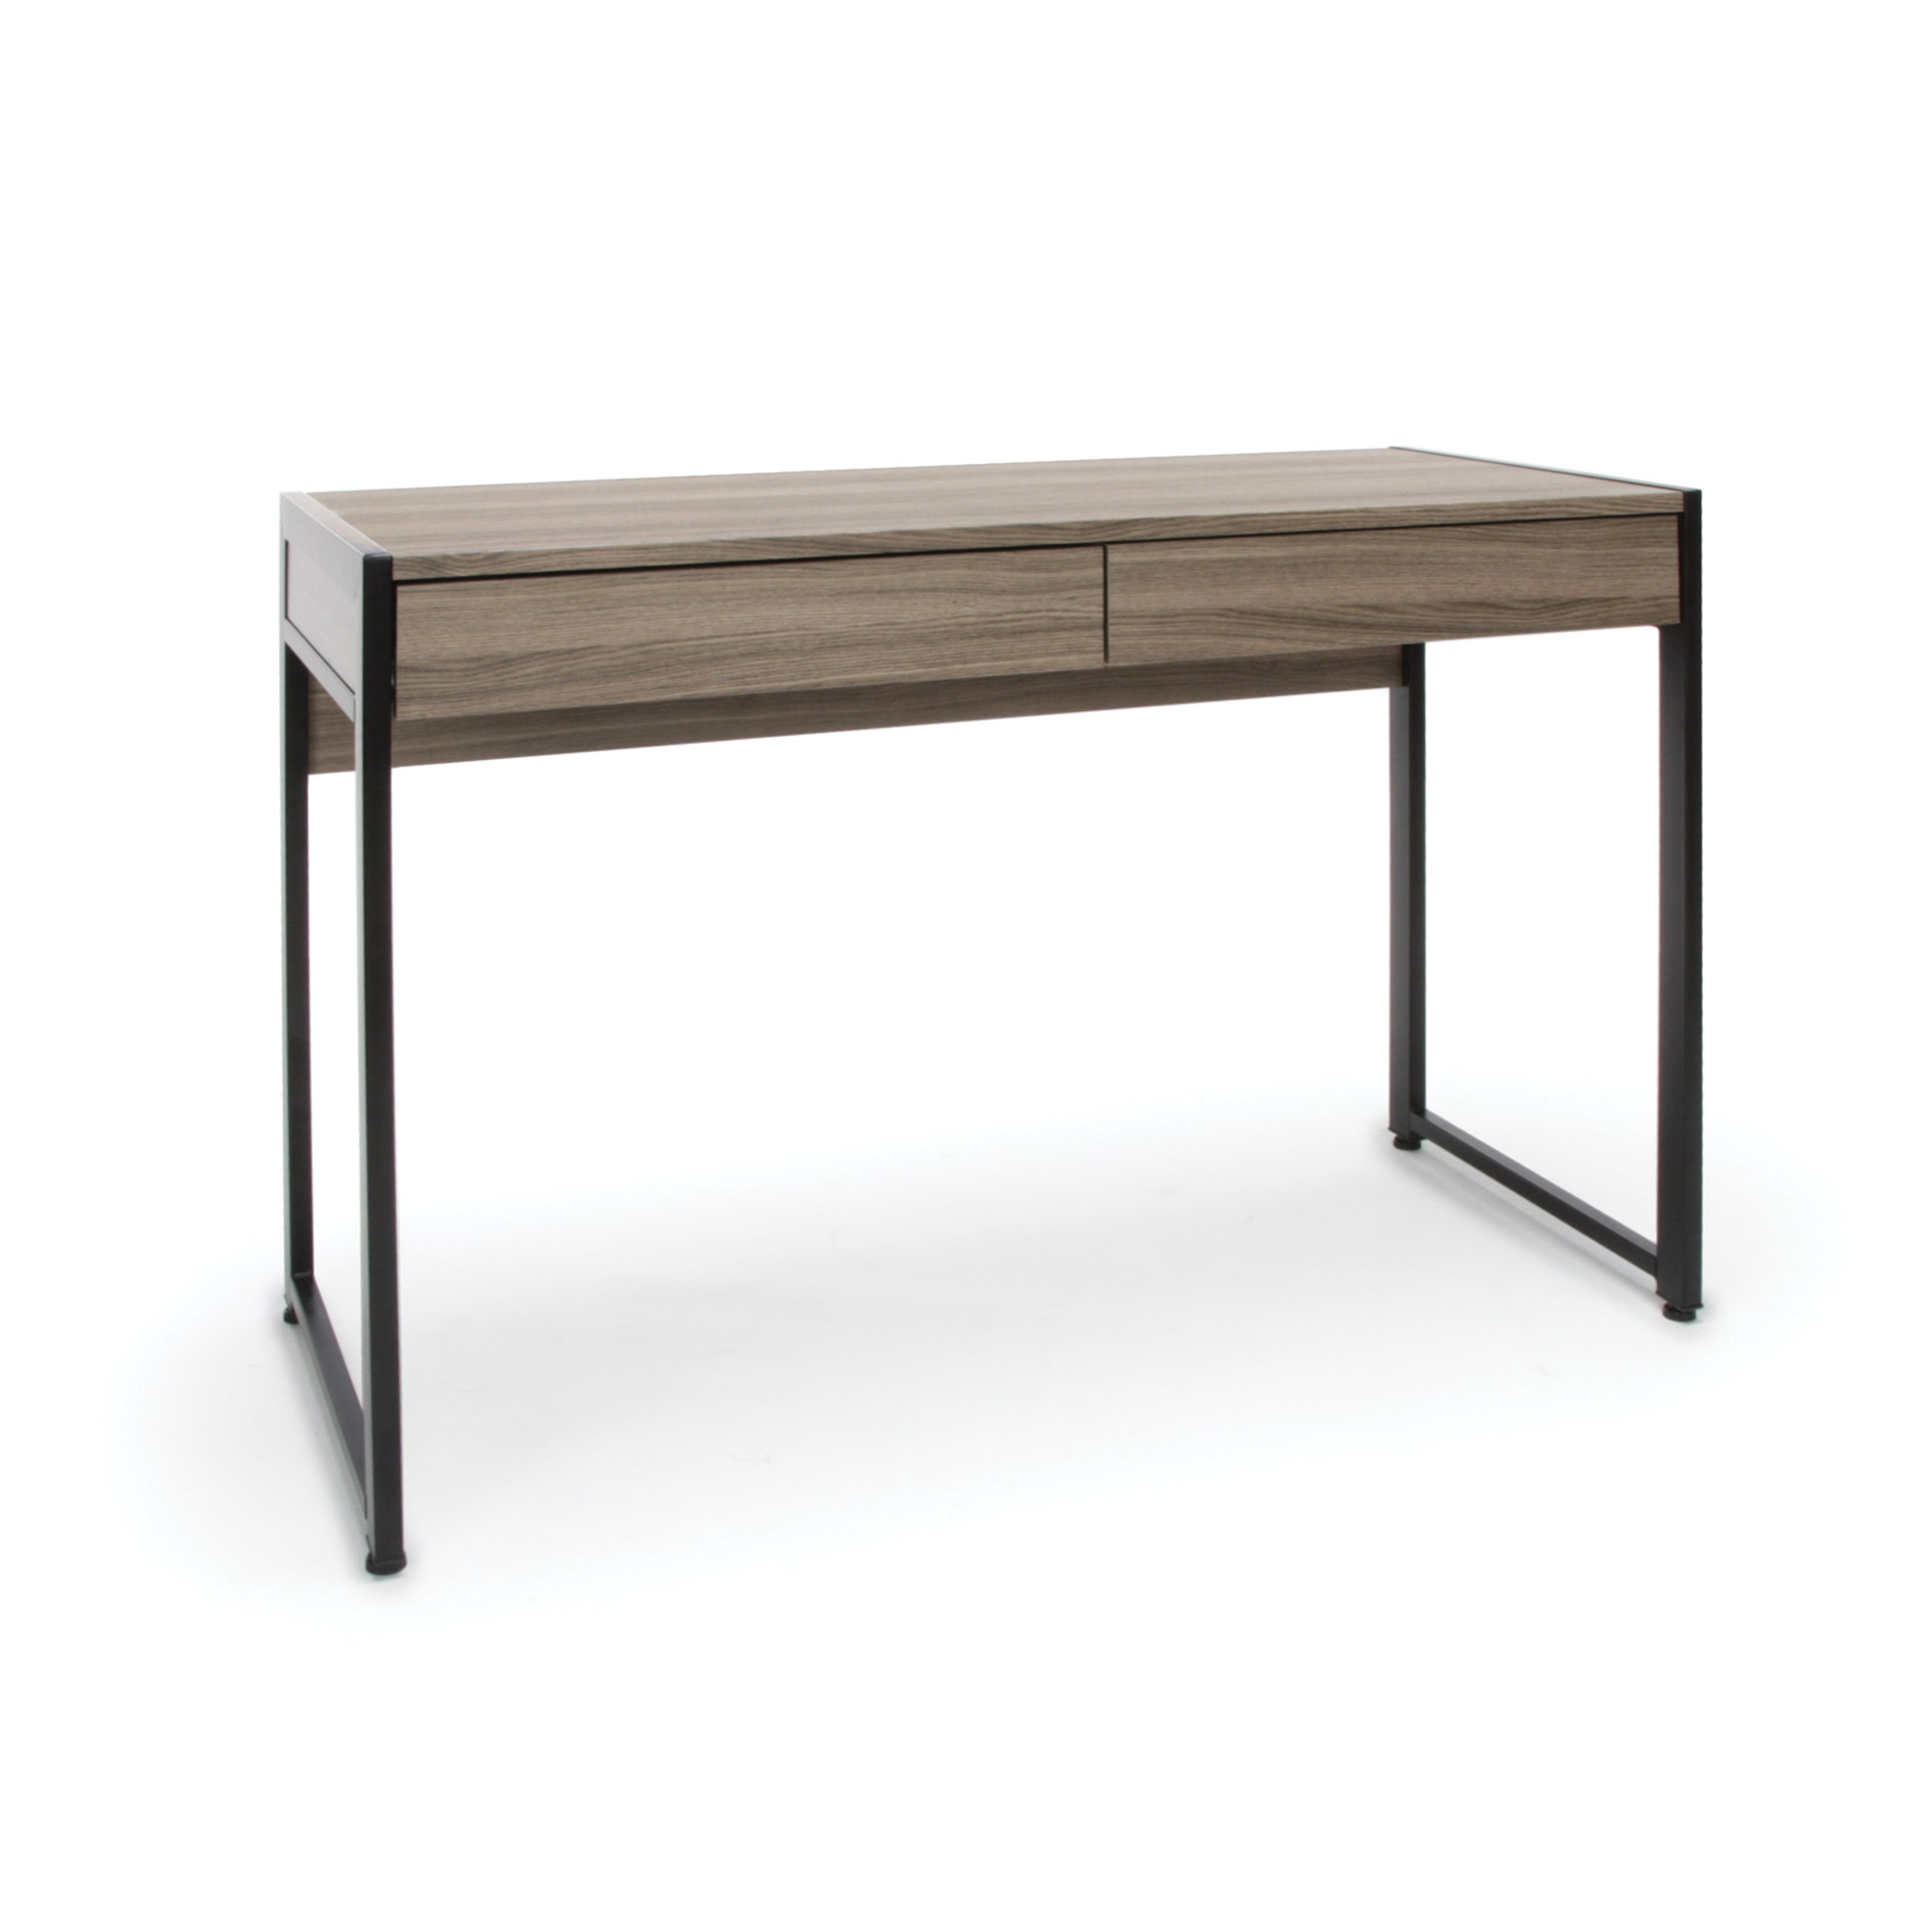 OFM ESS-1002-DWD Essentials ESS-1002 2-Drawer Office Desk, Driftwood by OFM